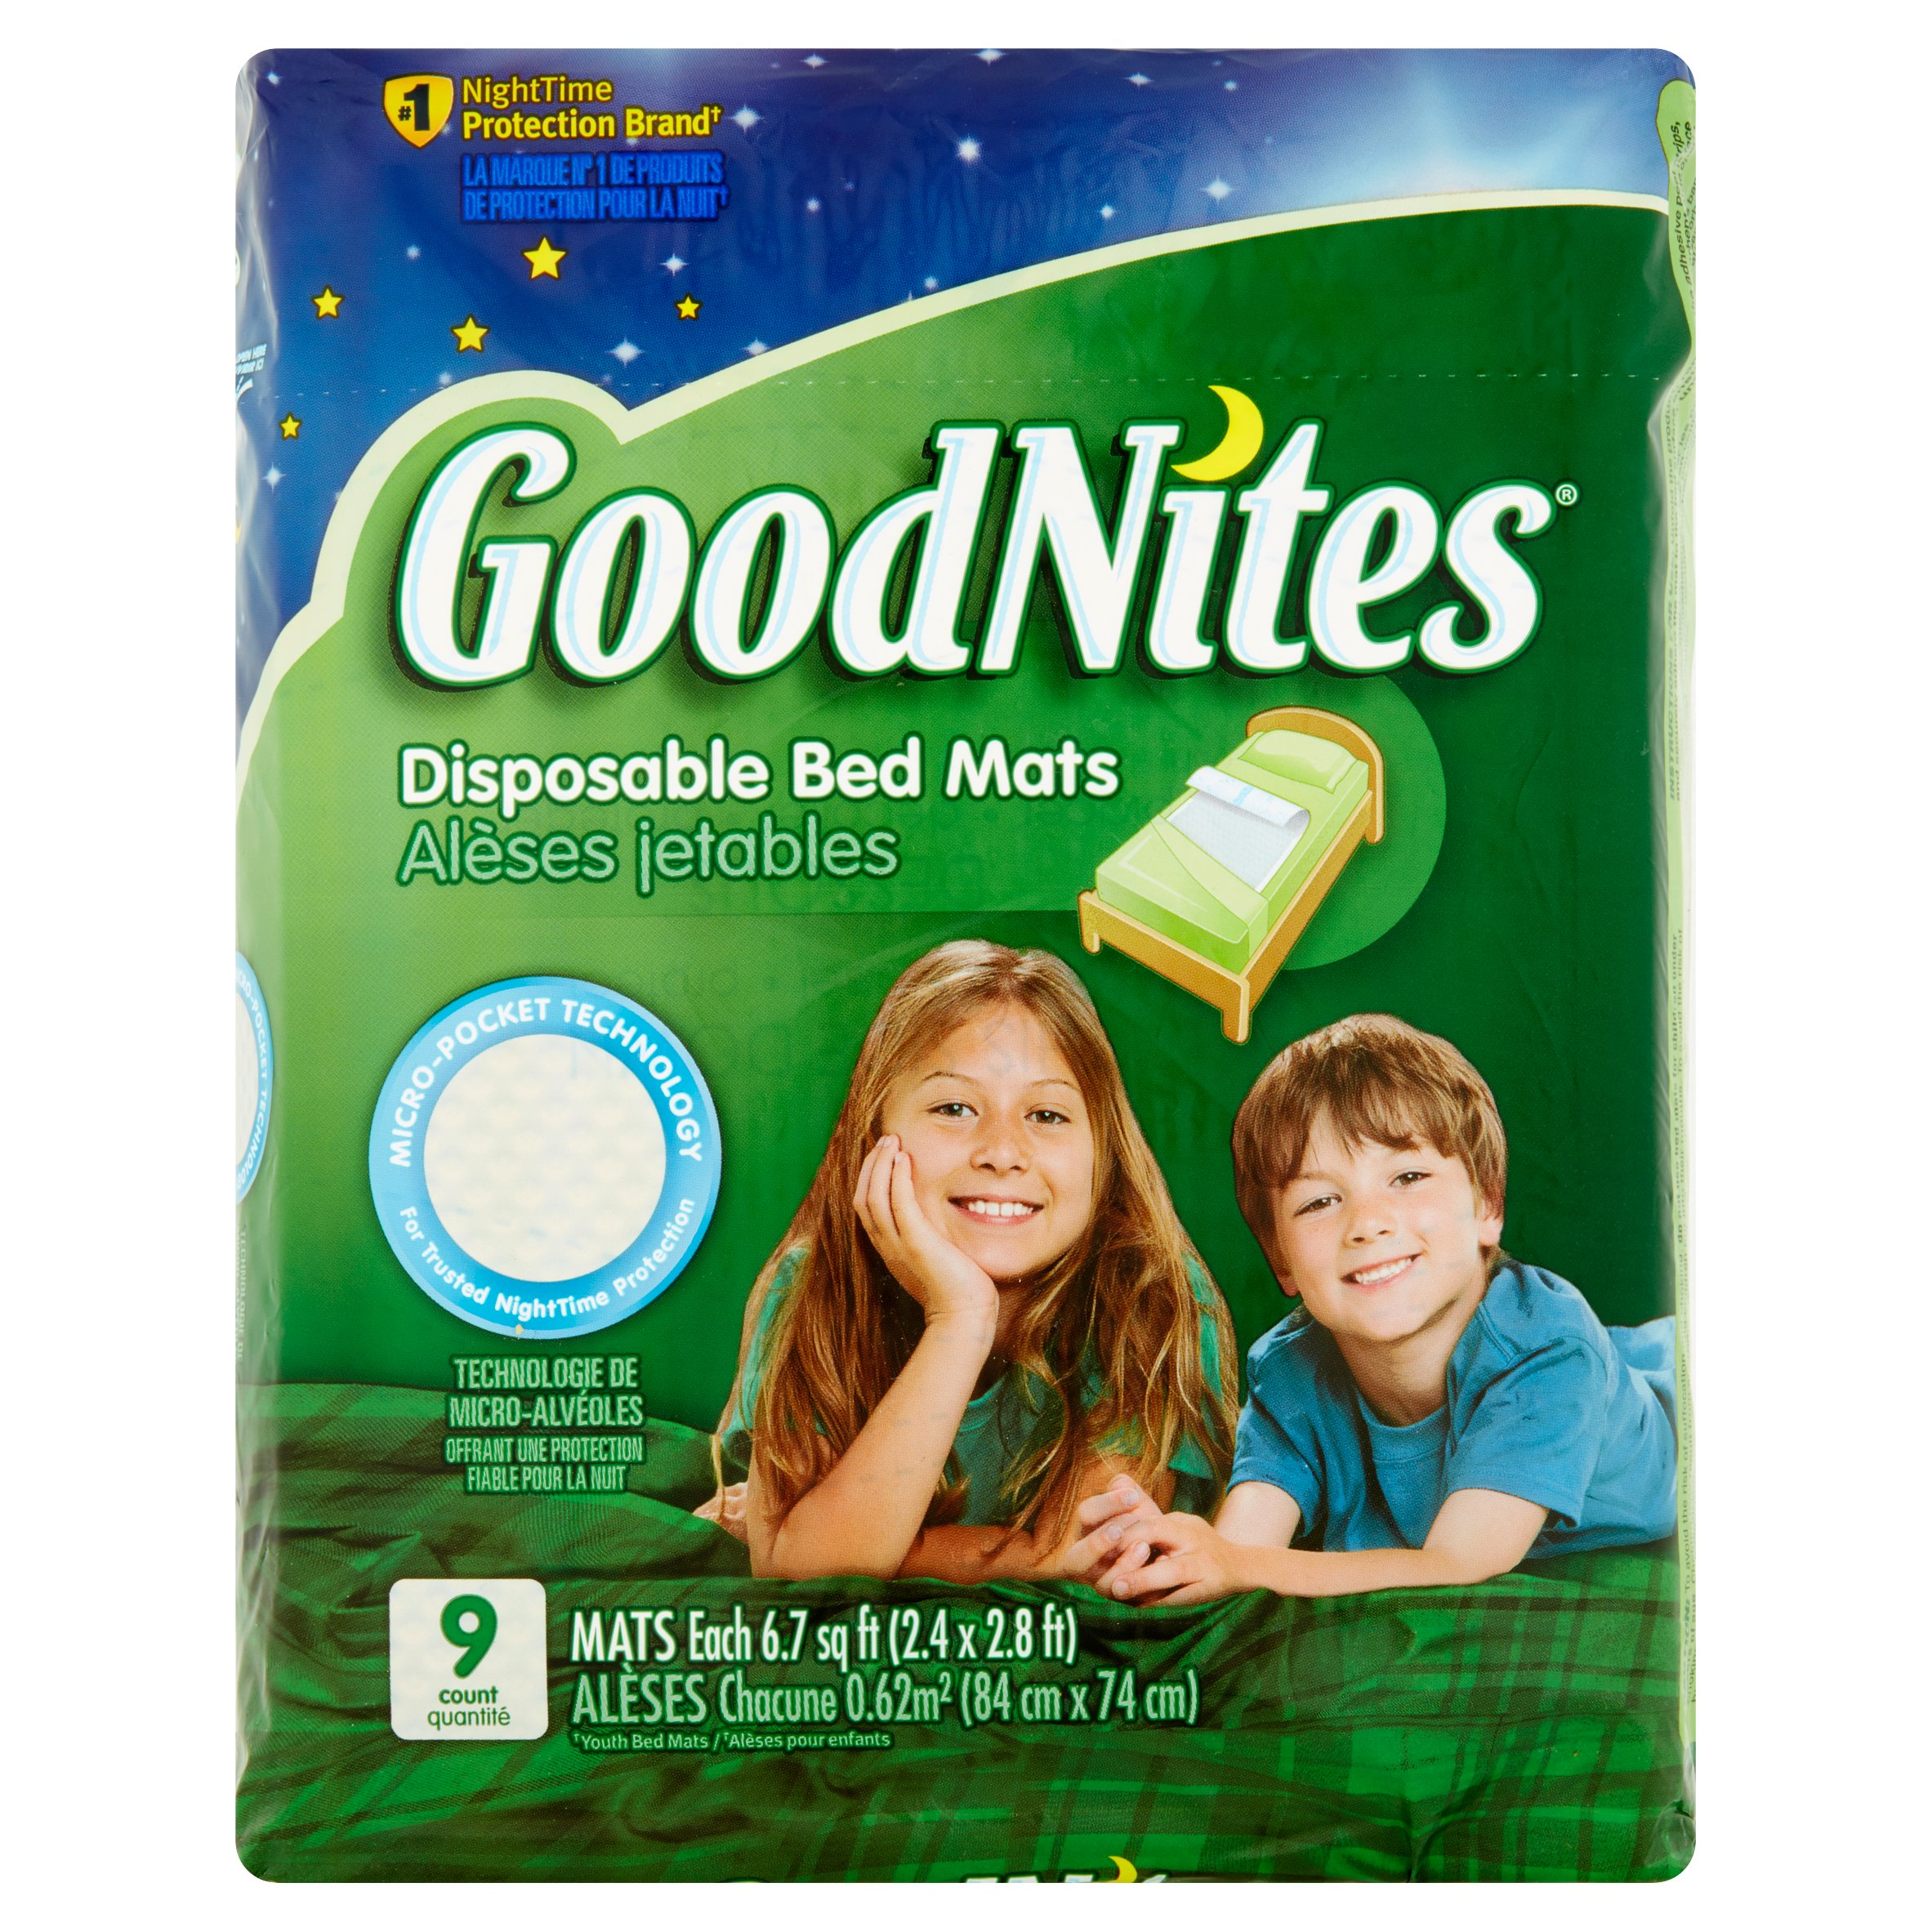 GoodNites Disposable Bed Mats, 9 Ct